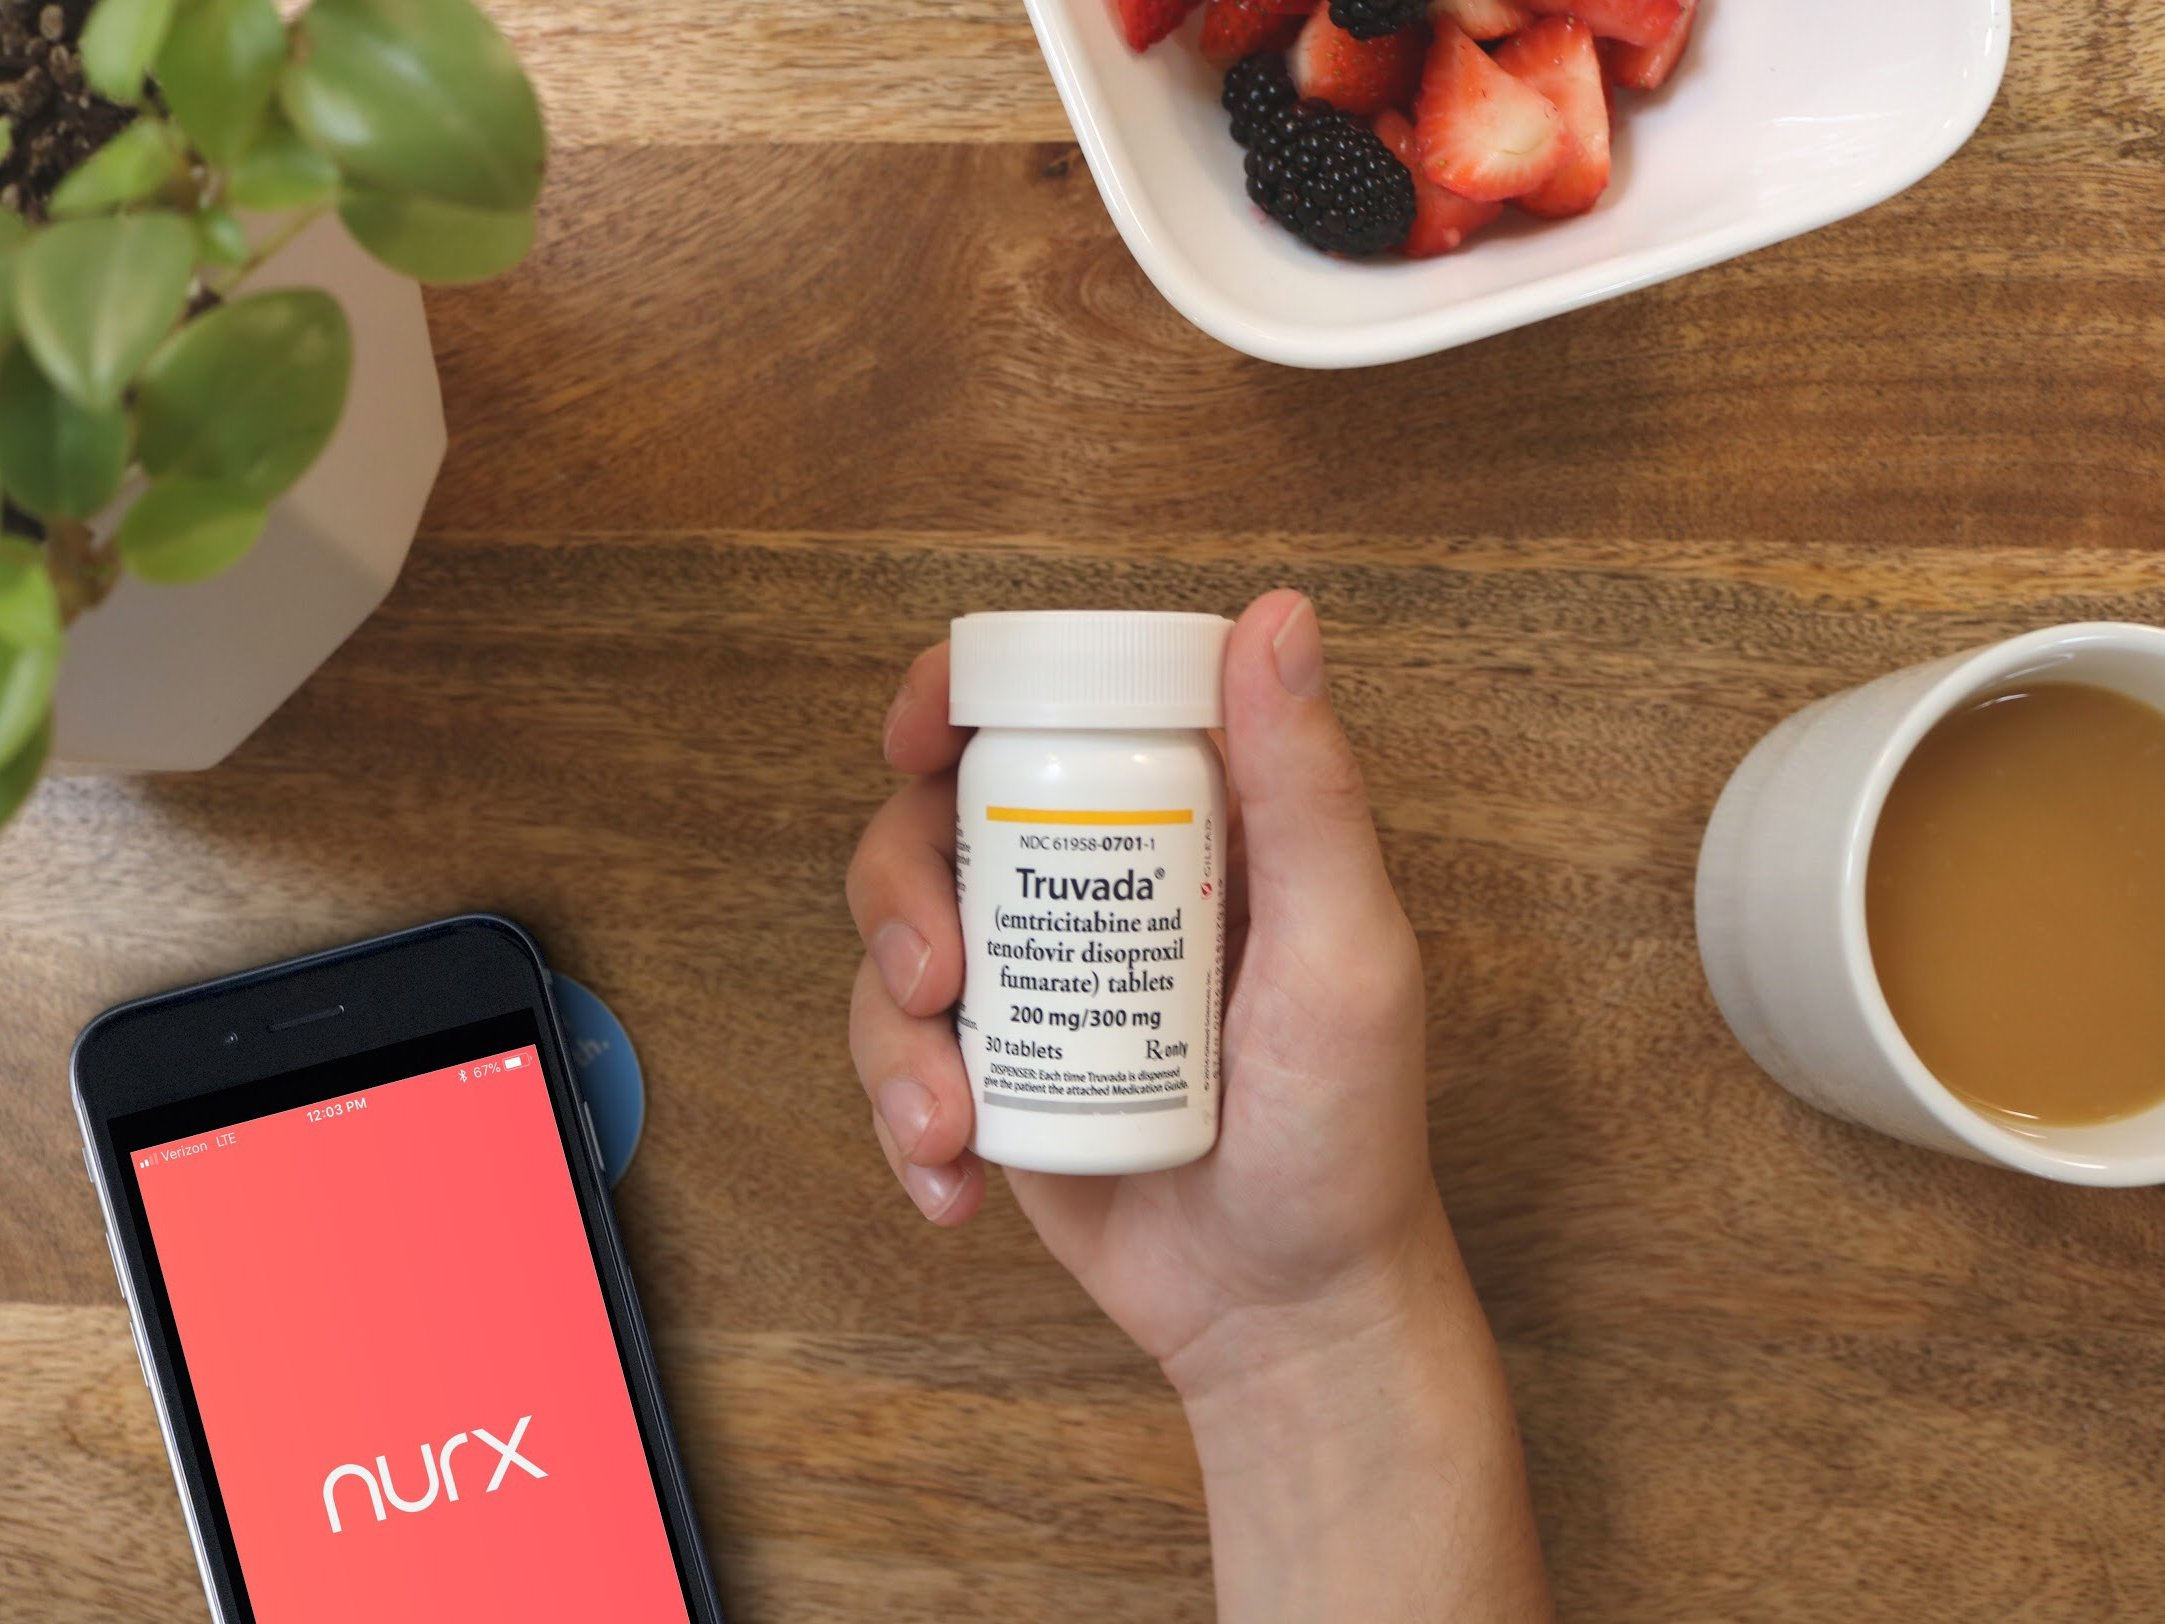 nurx truvada prep pill bottle